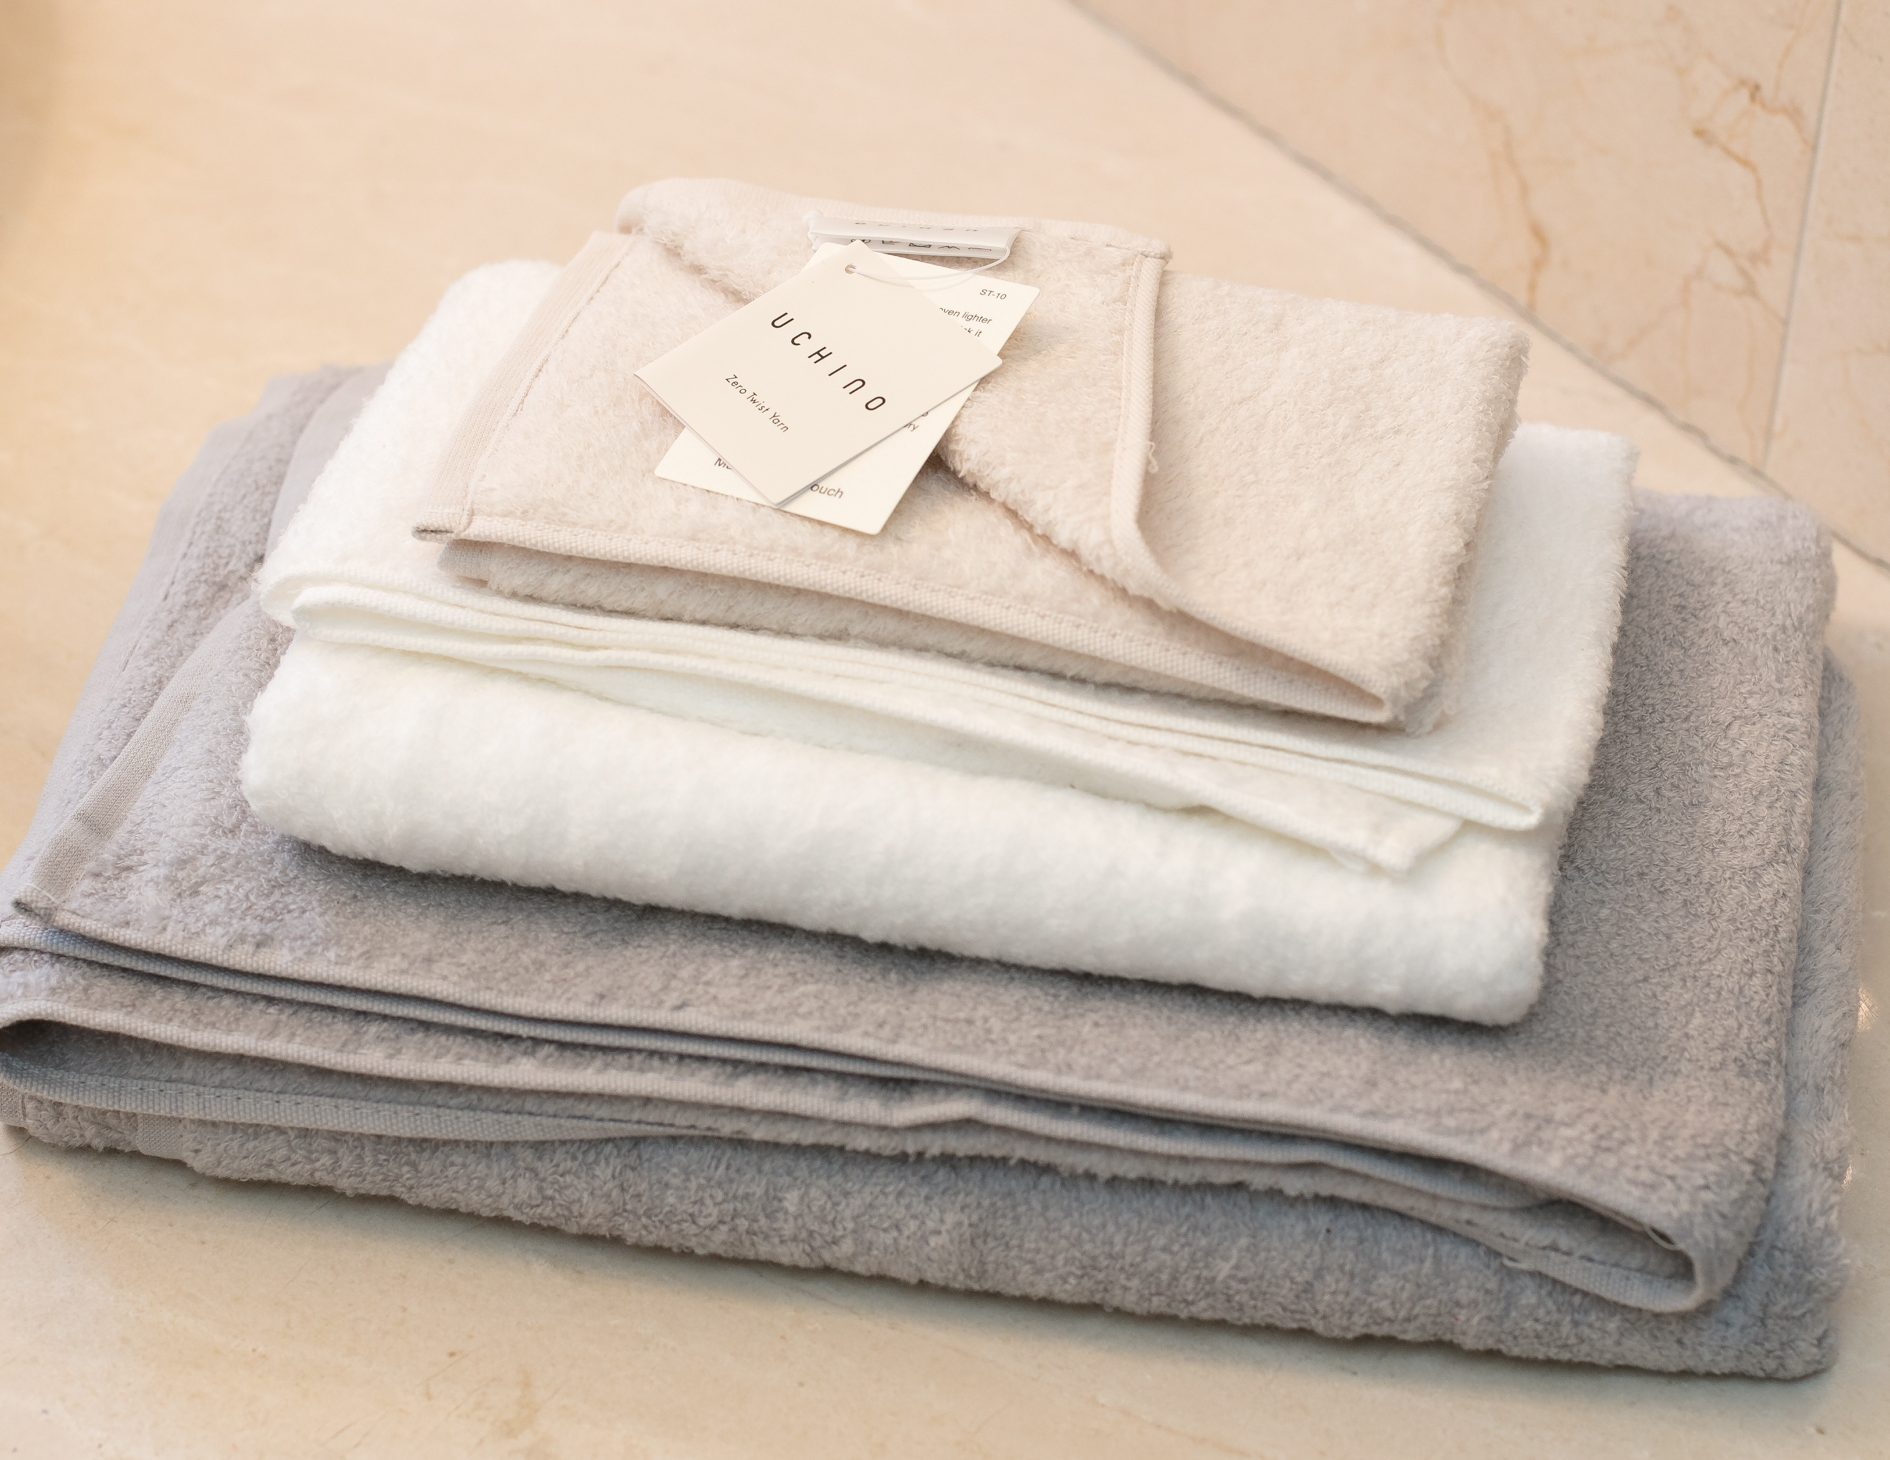 How to Choose the Best Towel for Your Needs